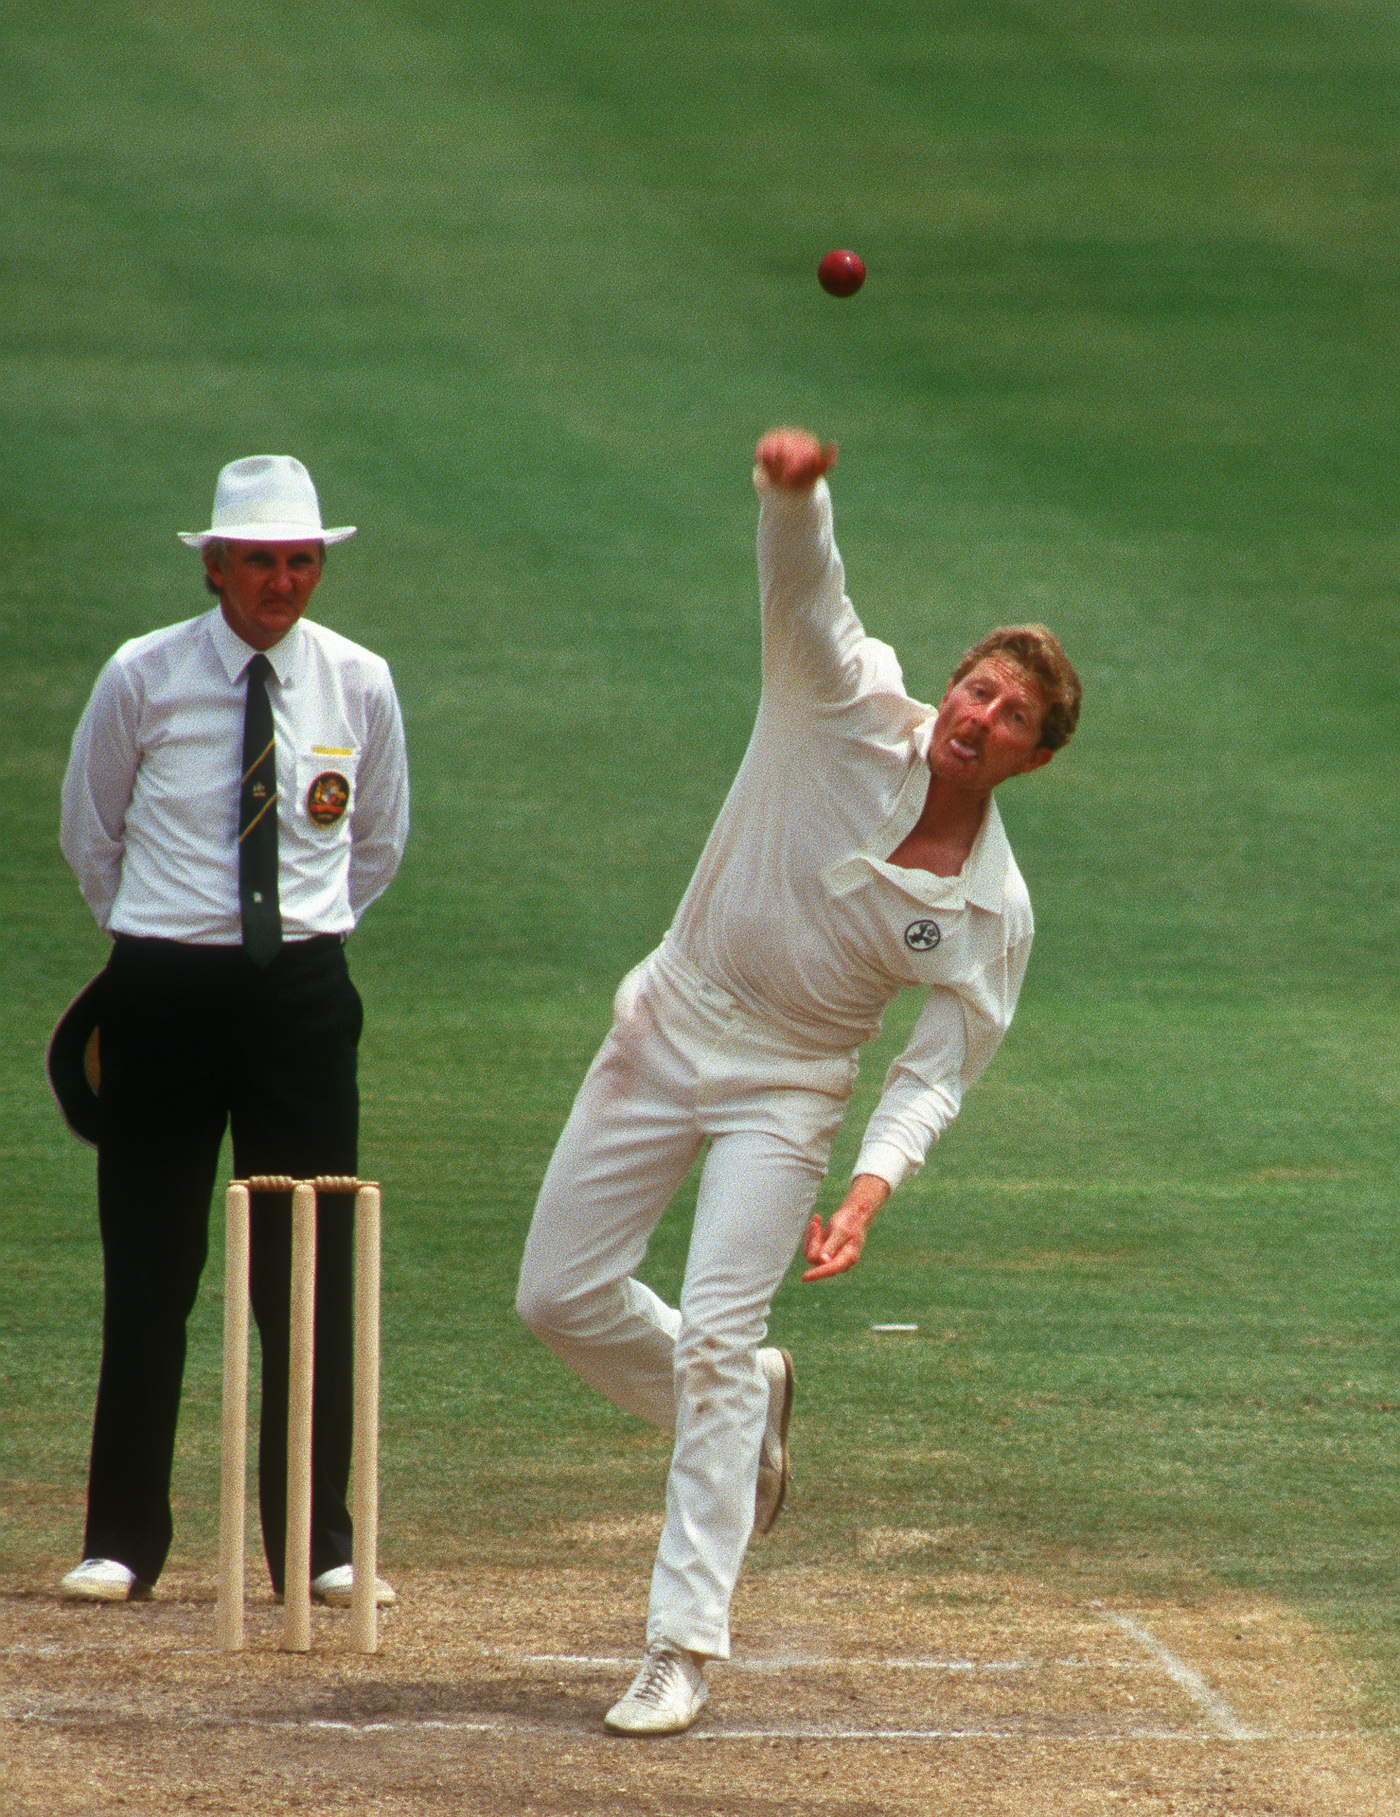 Having once feared for his place in the New South Wales team, Taylor went on to play 13 Tests and 83 ODIs for Australia